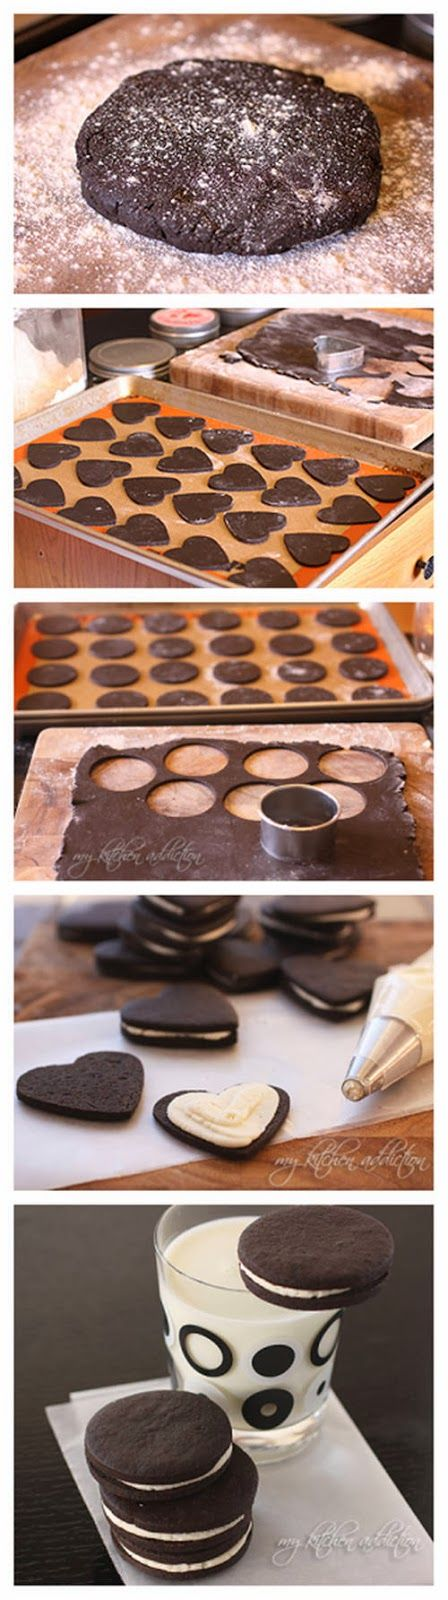 Homemade Oreo Cookies for a special occasion!